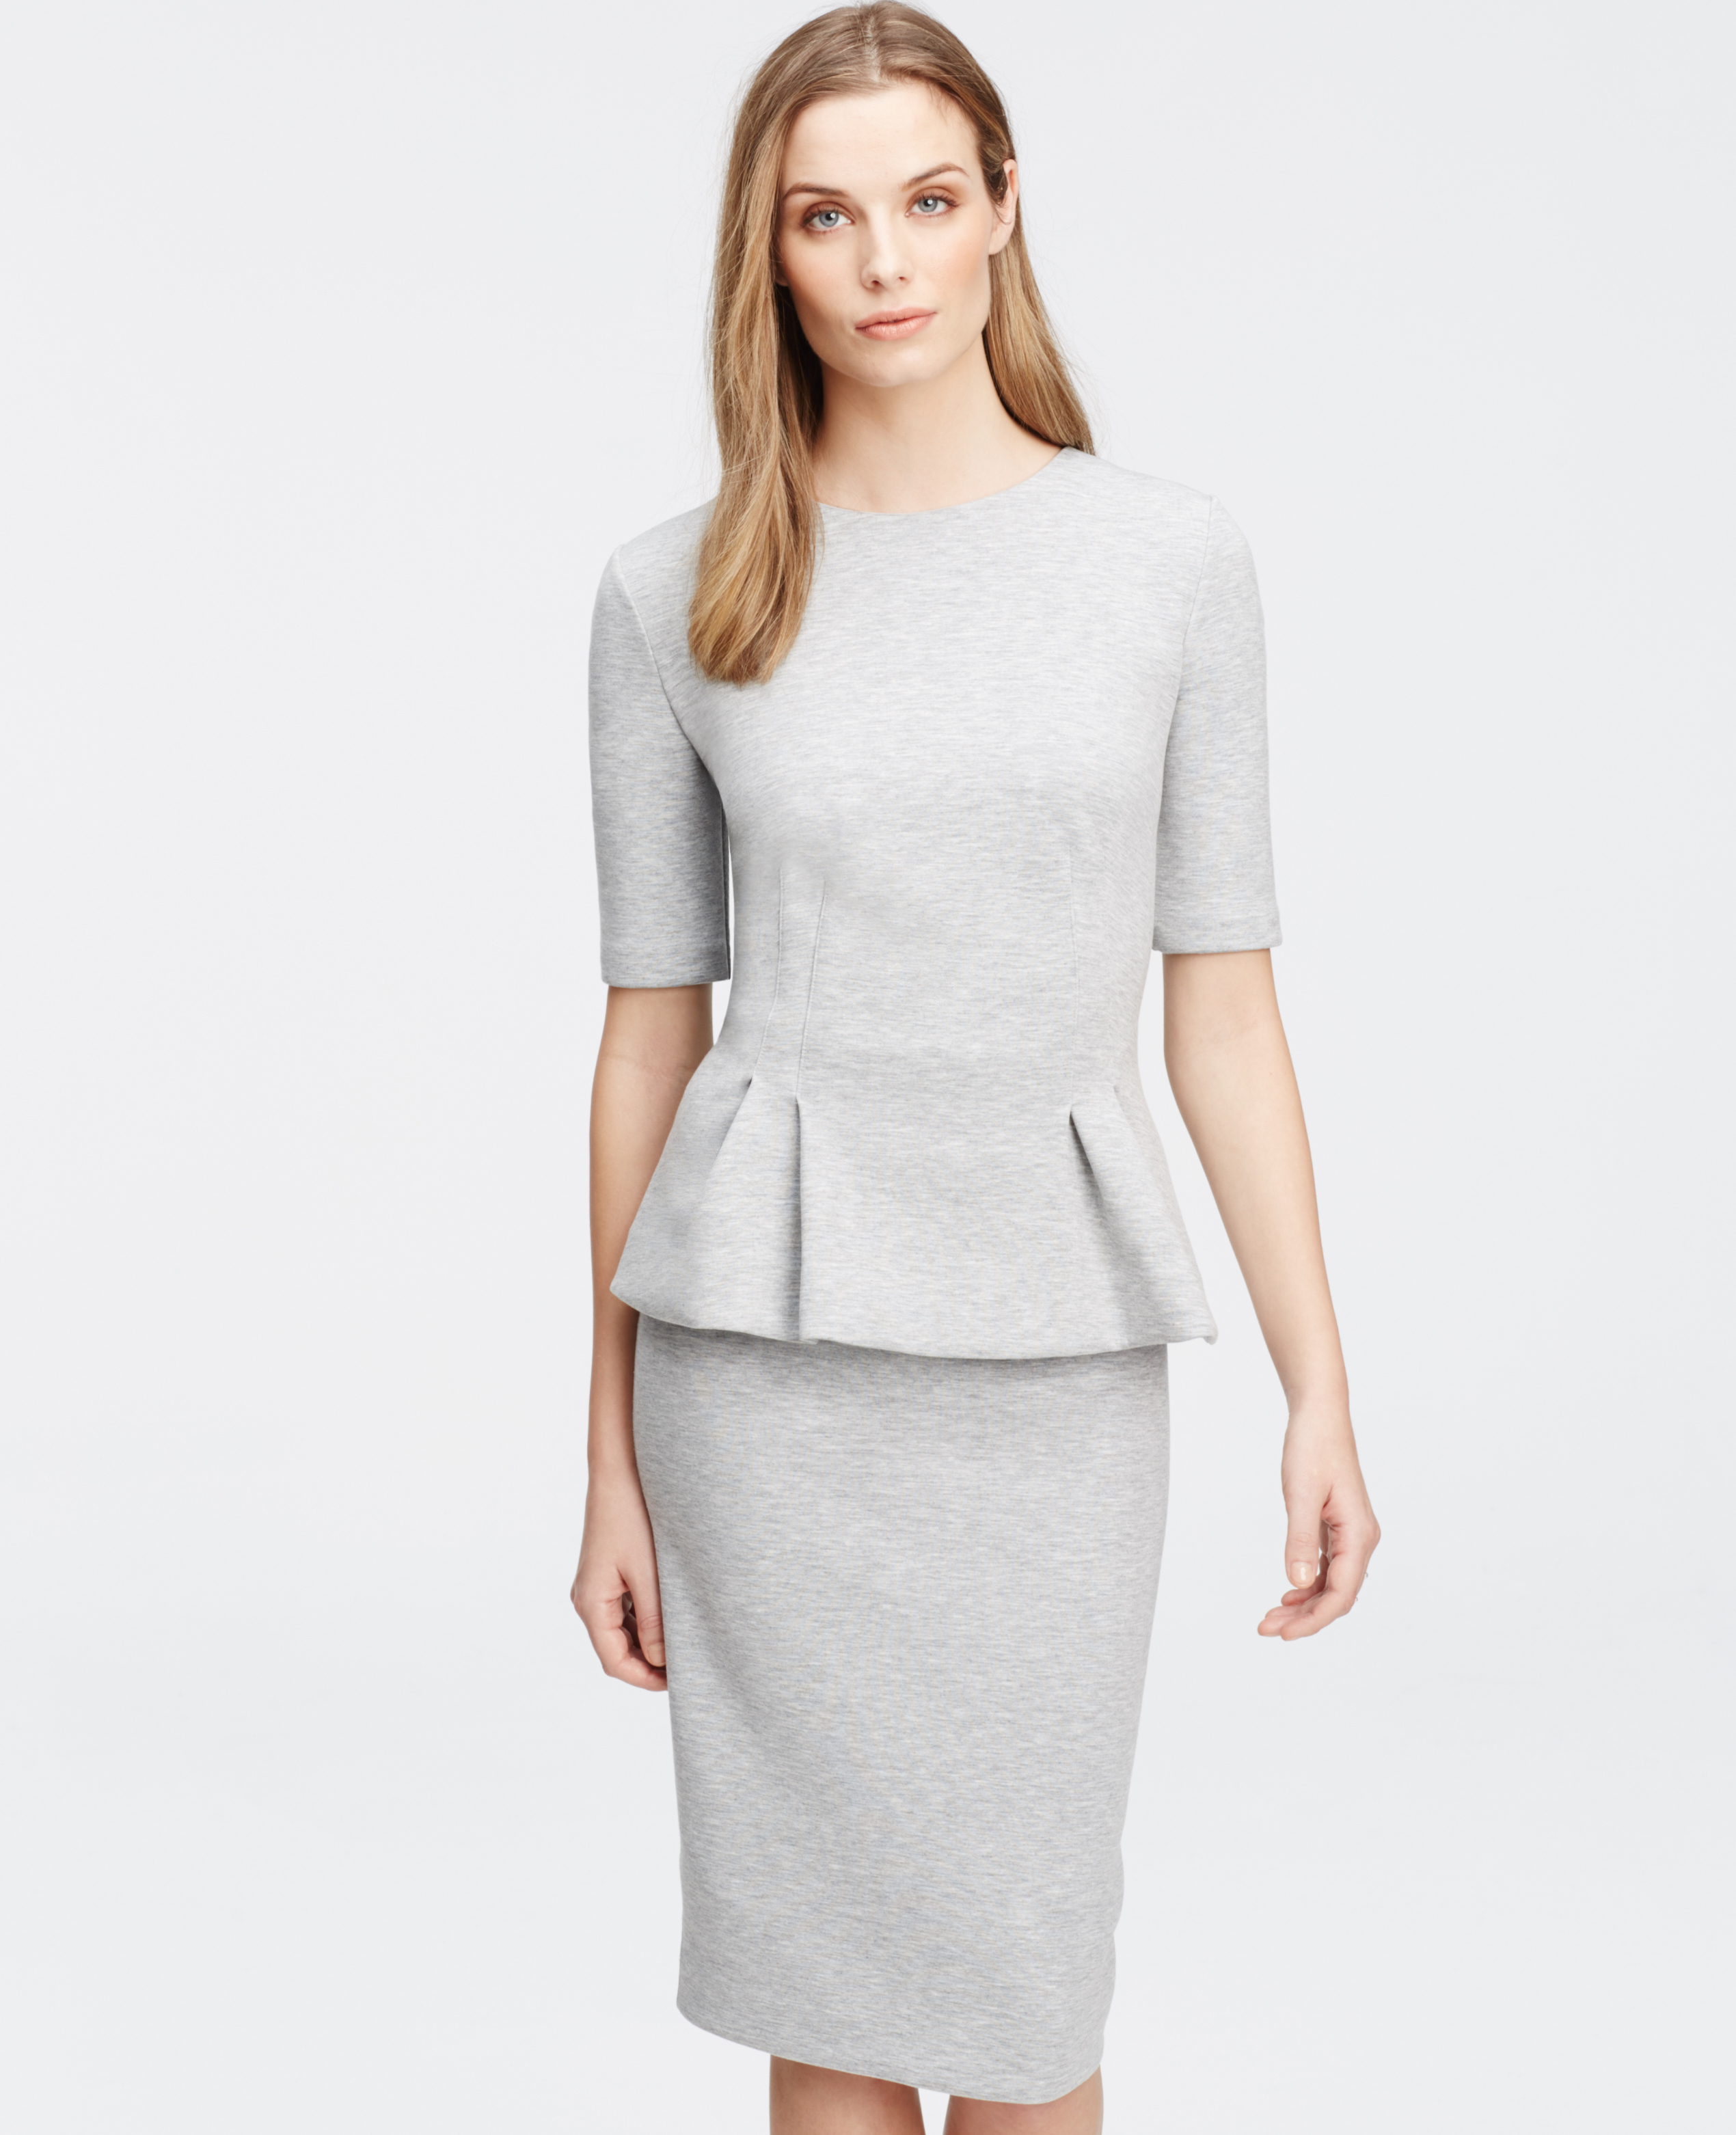 Ann taylor Petite Structured Peplum Short Sleeve Top in ...